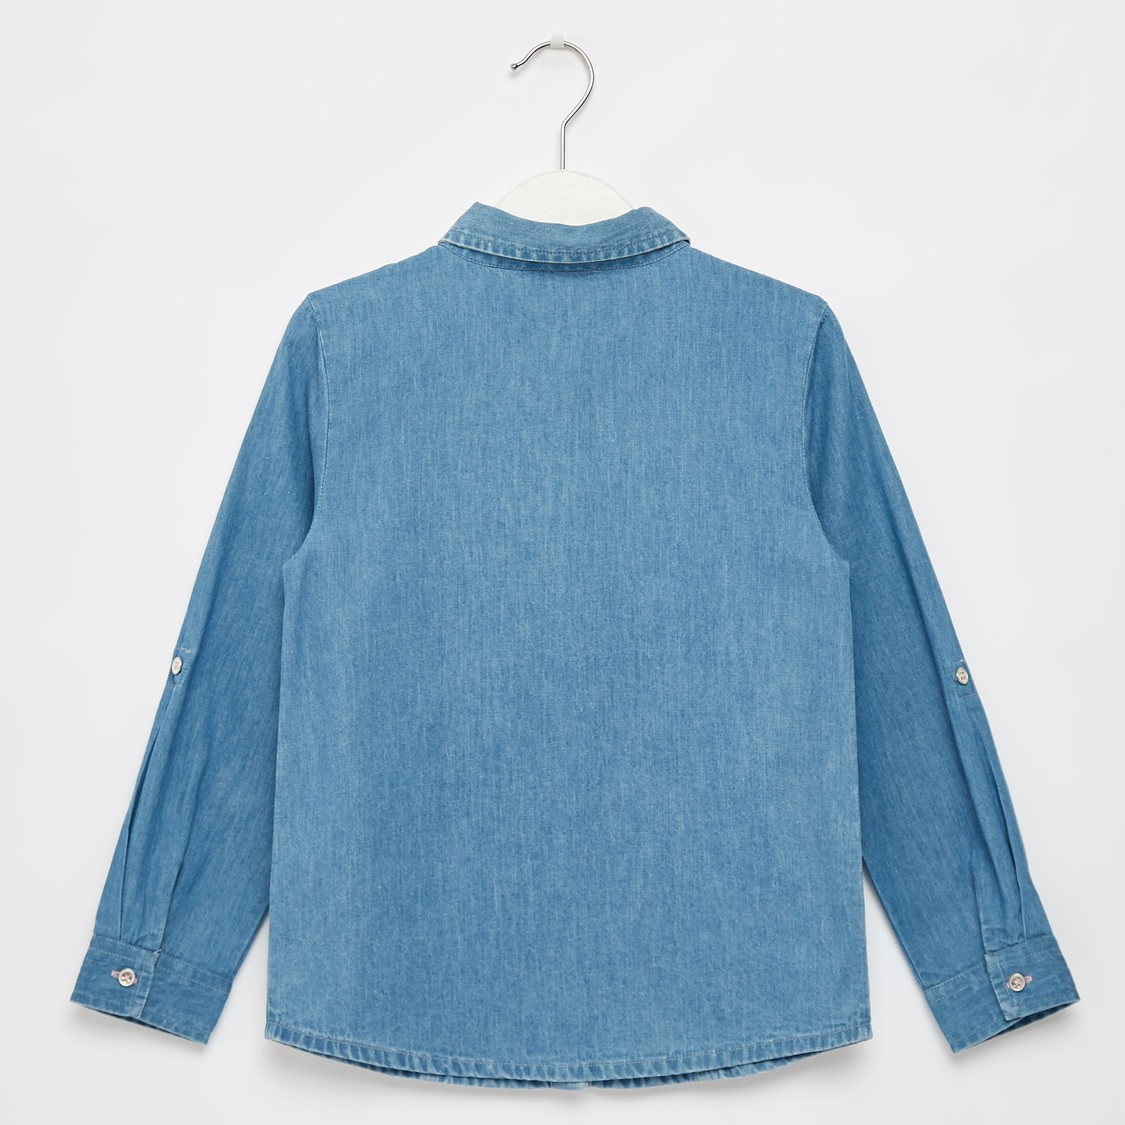 Stud Detail Denim Shirt with Spread Collar and Long Sleeves